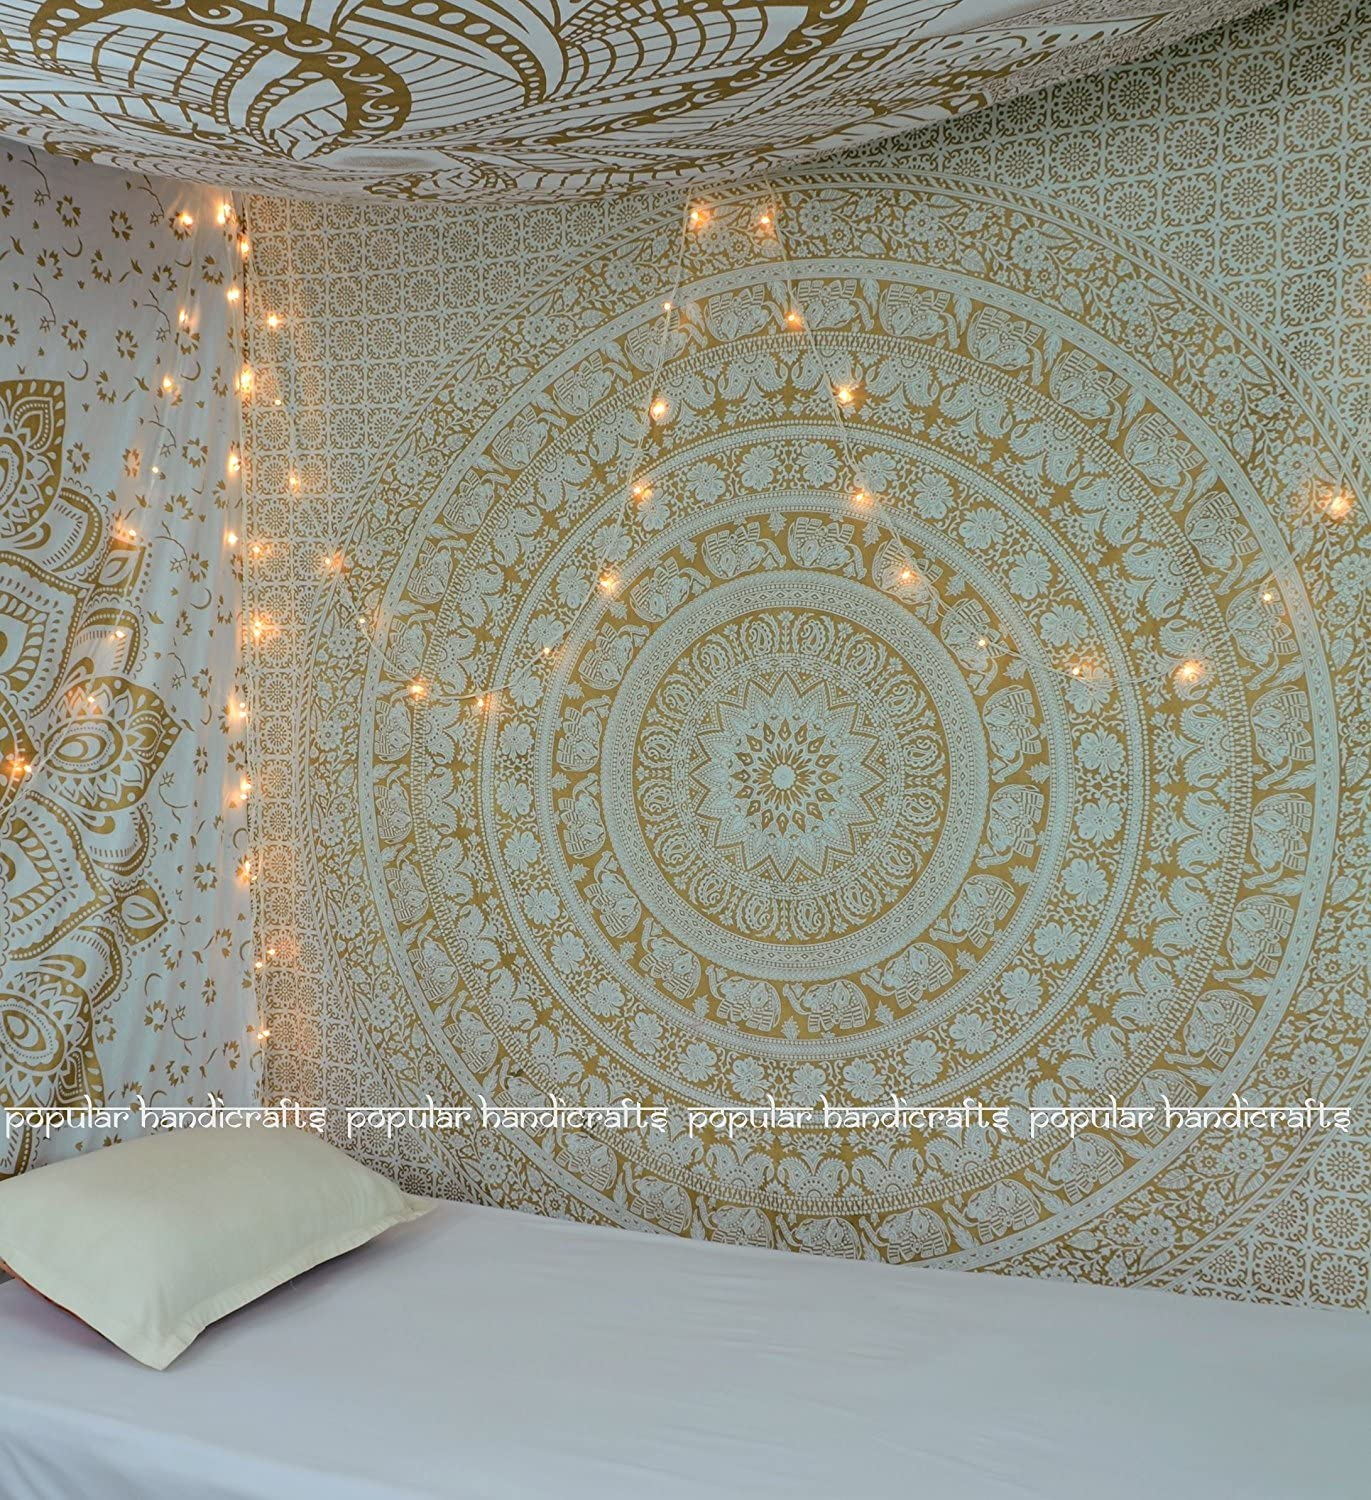 Popular Handicrafts New Launched Popular Original Gold Elephant Tapestry Indian Mandala Wall Art, Hippie Wall Hanging, Bohemian Bedspread with Metallic Shine King Size Tapestries Exclusively